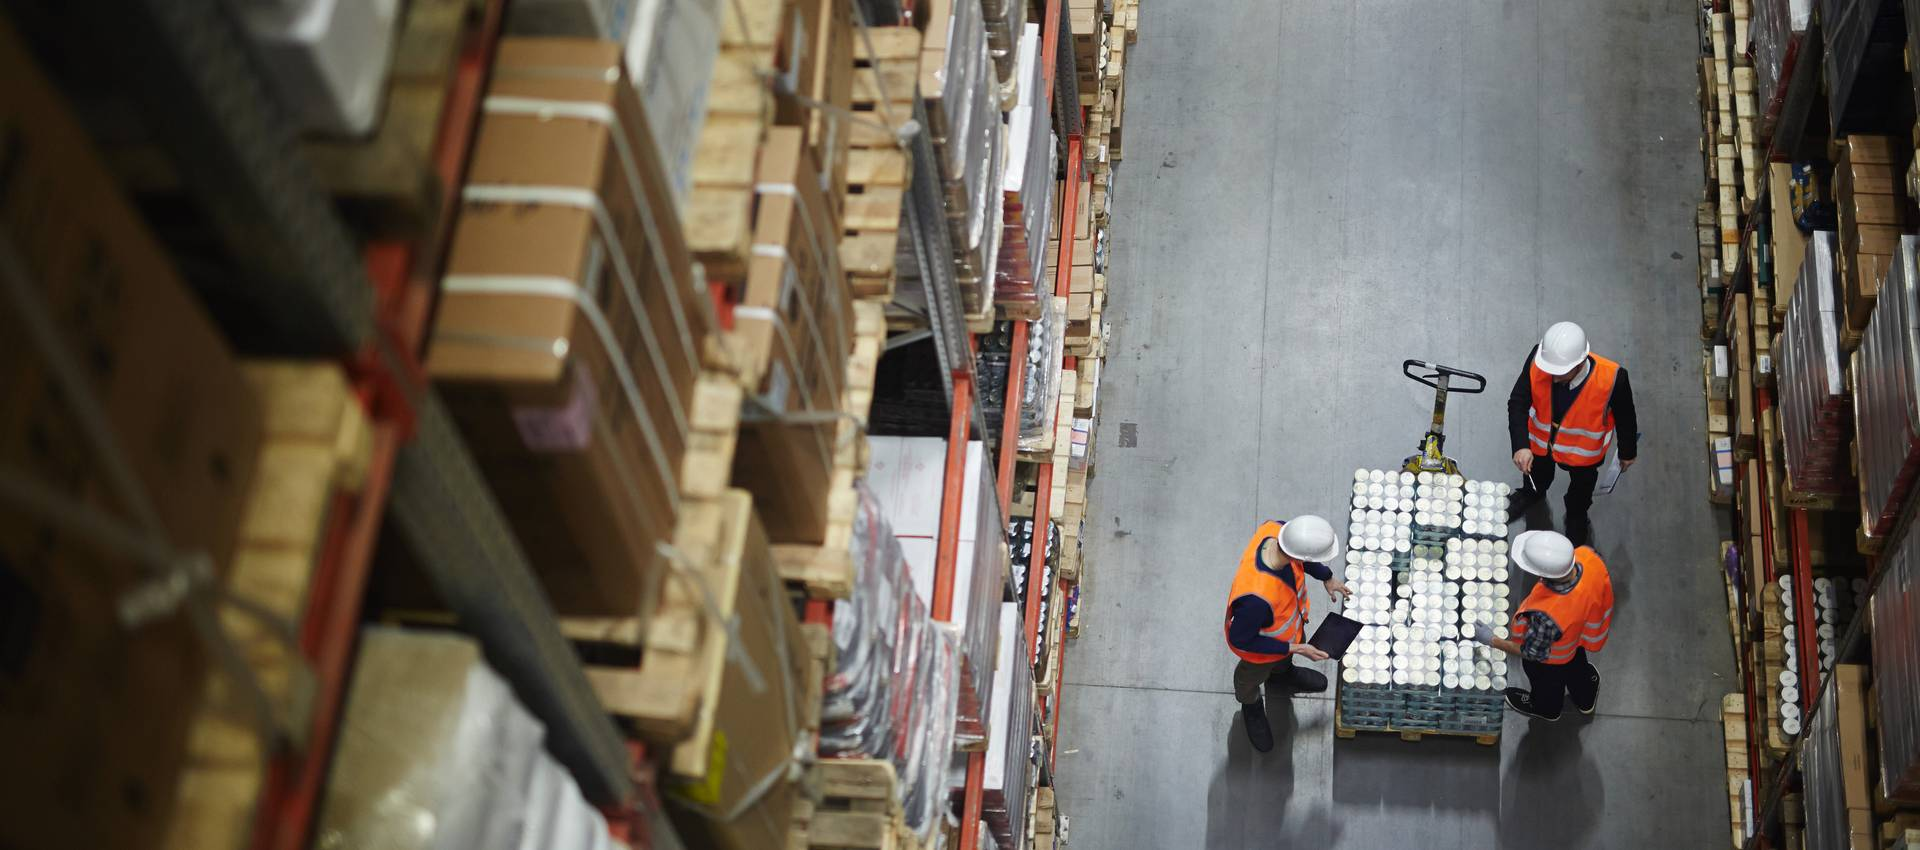 How to Prevent Theft in the Warehouse